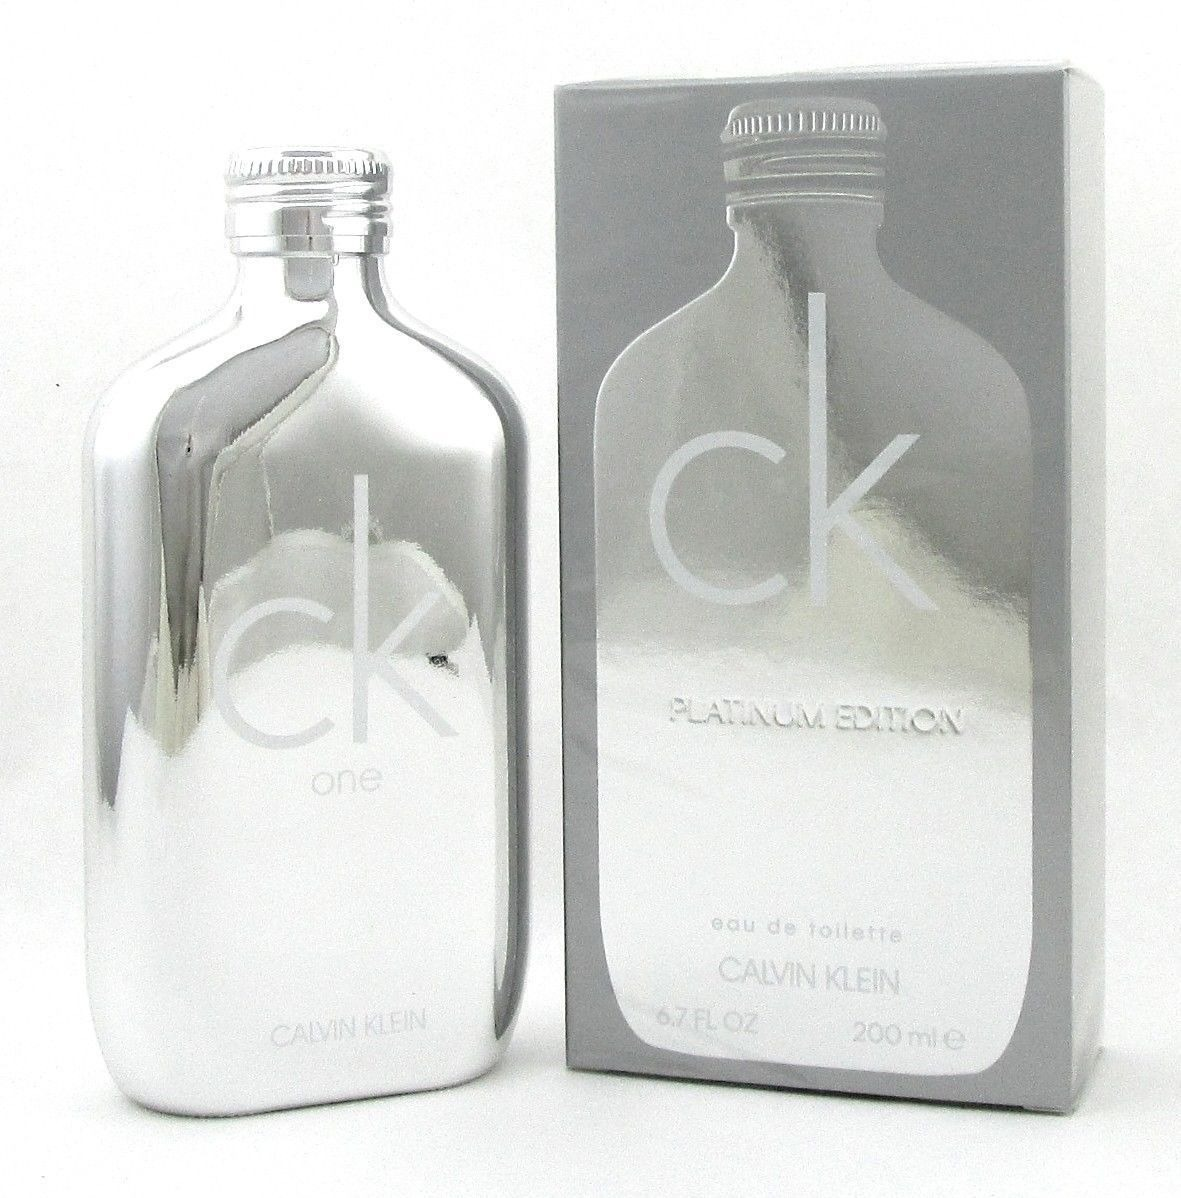 bca9d62b8cf1f perfume ck one platinum edition calvin klein 100ml original. Carregando  zoom.